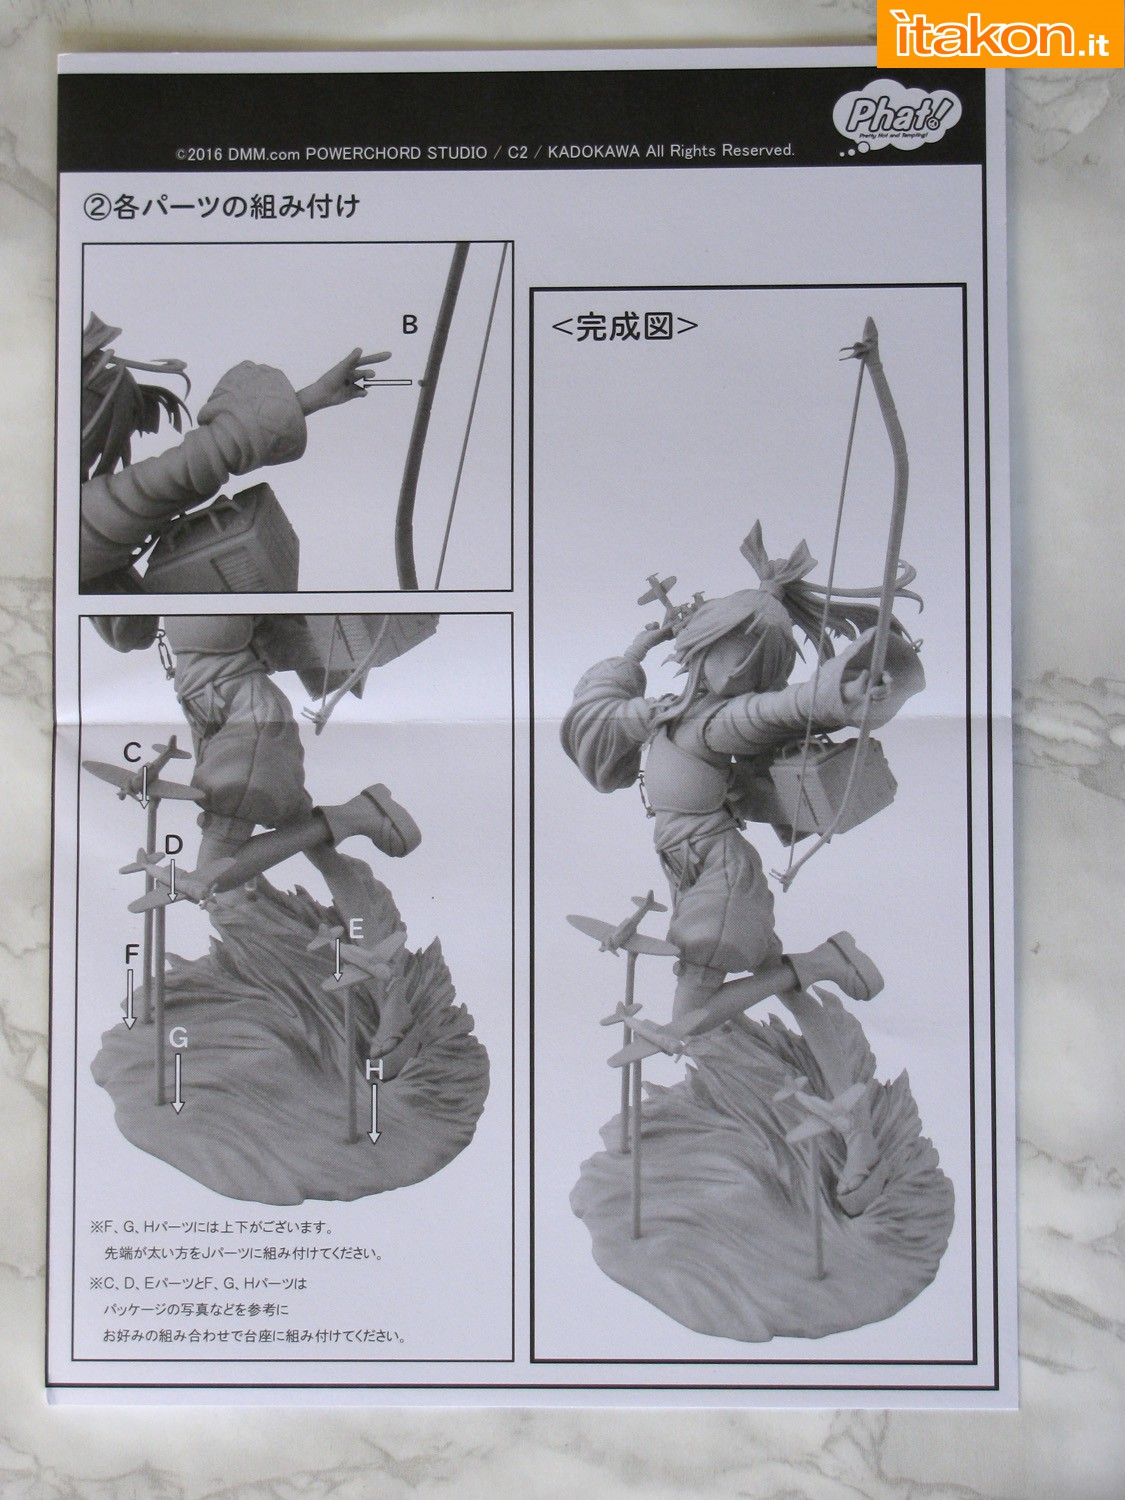 Link a 053-zuihou-kancolle-phat-recensione